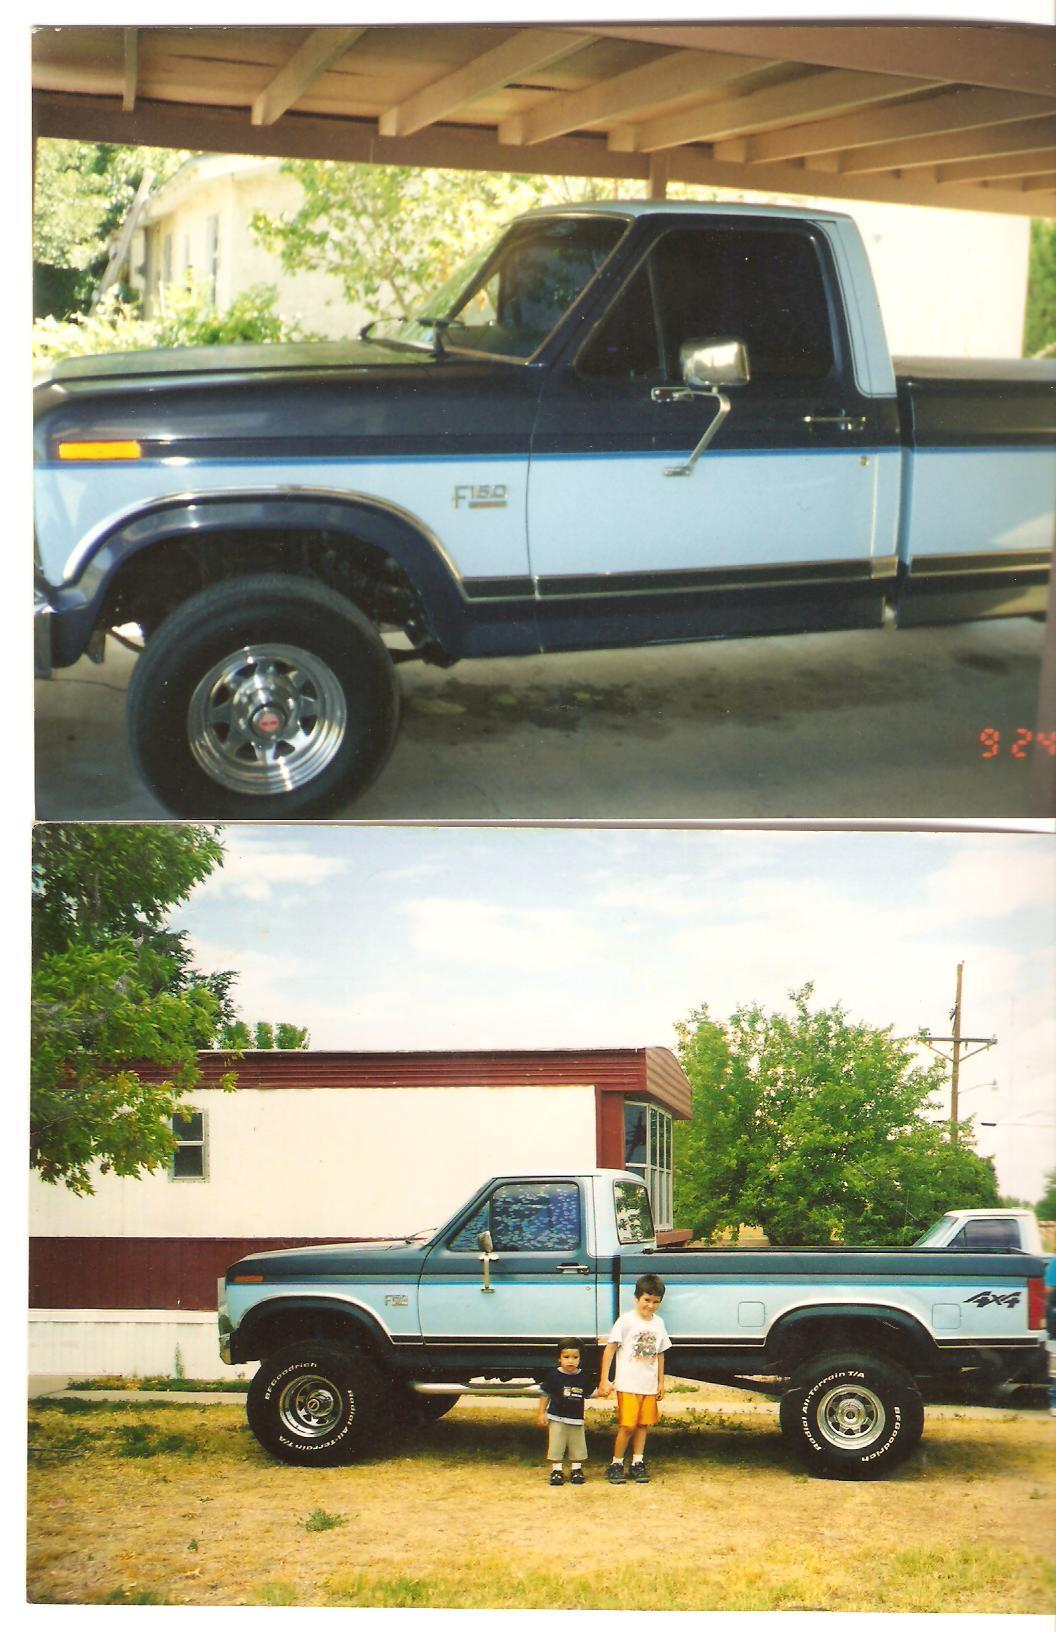 Macias1994's 1986 Ford F150 Regular Cab